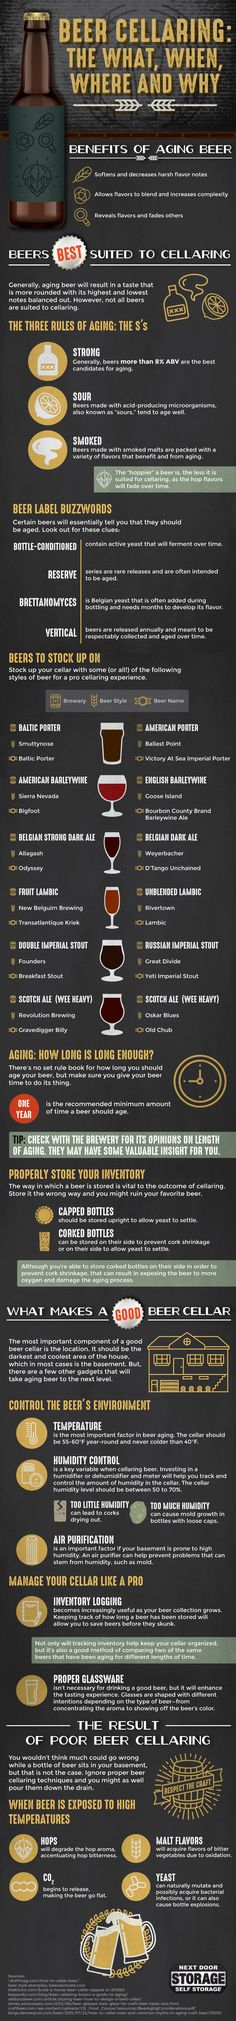 Beer Cellaring 101: The Benefits of Aging Beer http://n.kchoptalk.com/1pMpWjX  #craftbeer #beer